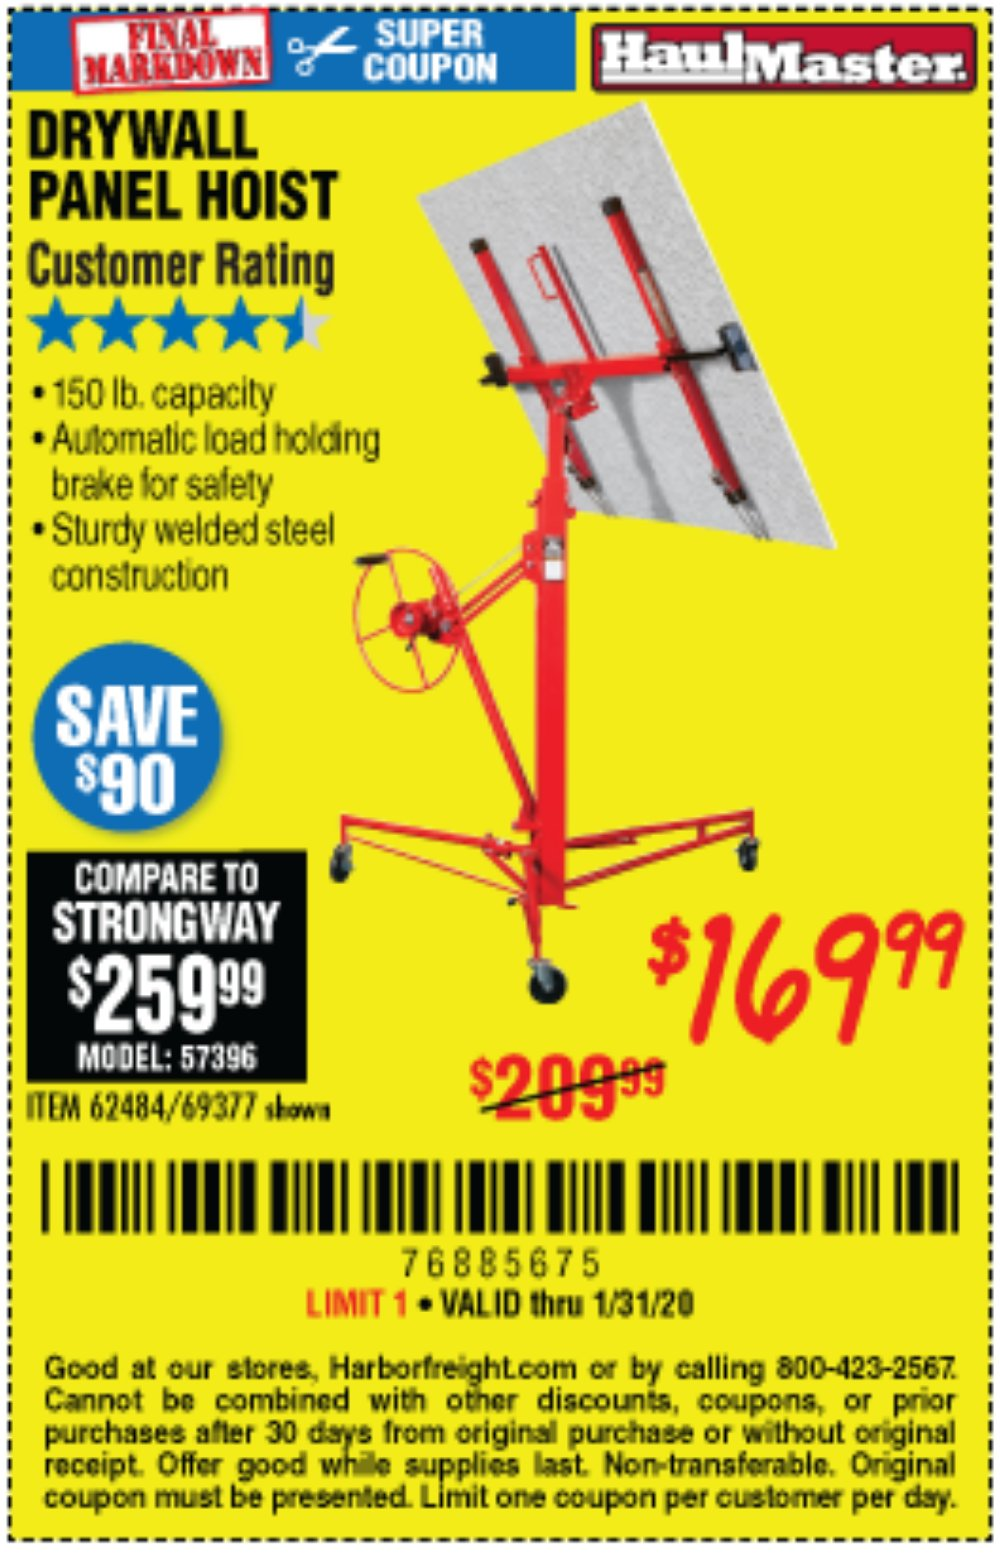 Harbor Freight Coupon, HF Coupons - 150 Lb. Capacity Drywall/panel Hoist